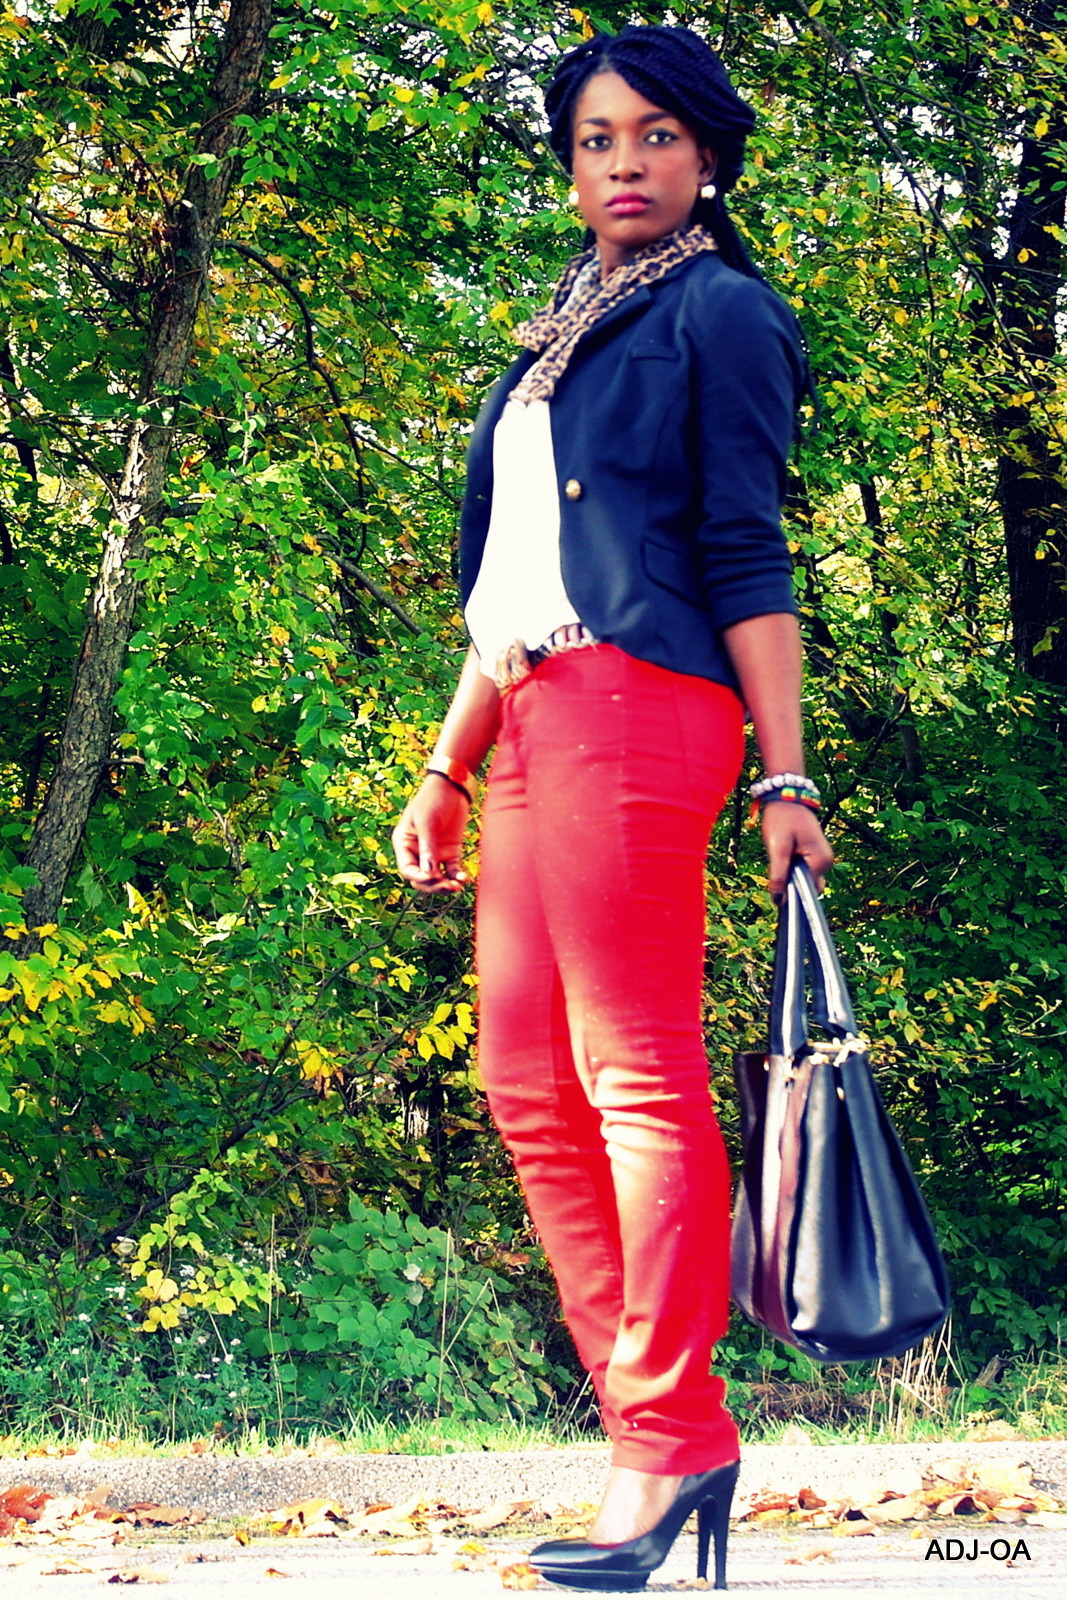 Black Blazer: Oxford and reagent // Shear white top: The Ross// Red Jeans: NY&Co// Black Heel: Joey// Black Purse: Colab (Christopher Kon) Scarf: Borrowed // Gold Watch: Guess// Bracelets and earrings: Ghana// Necklace: Thrifted Lau of myprojectsidewalk.tumblr.com/ #Blackfashion On FacebookTwitter @BlackFashionbyj